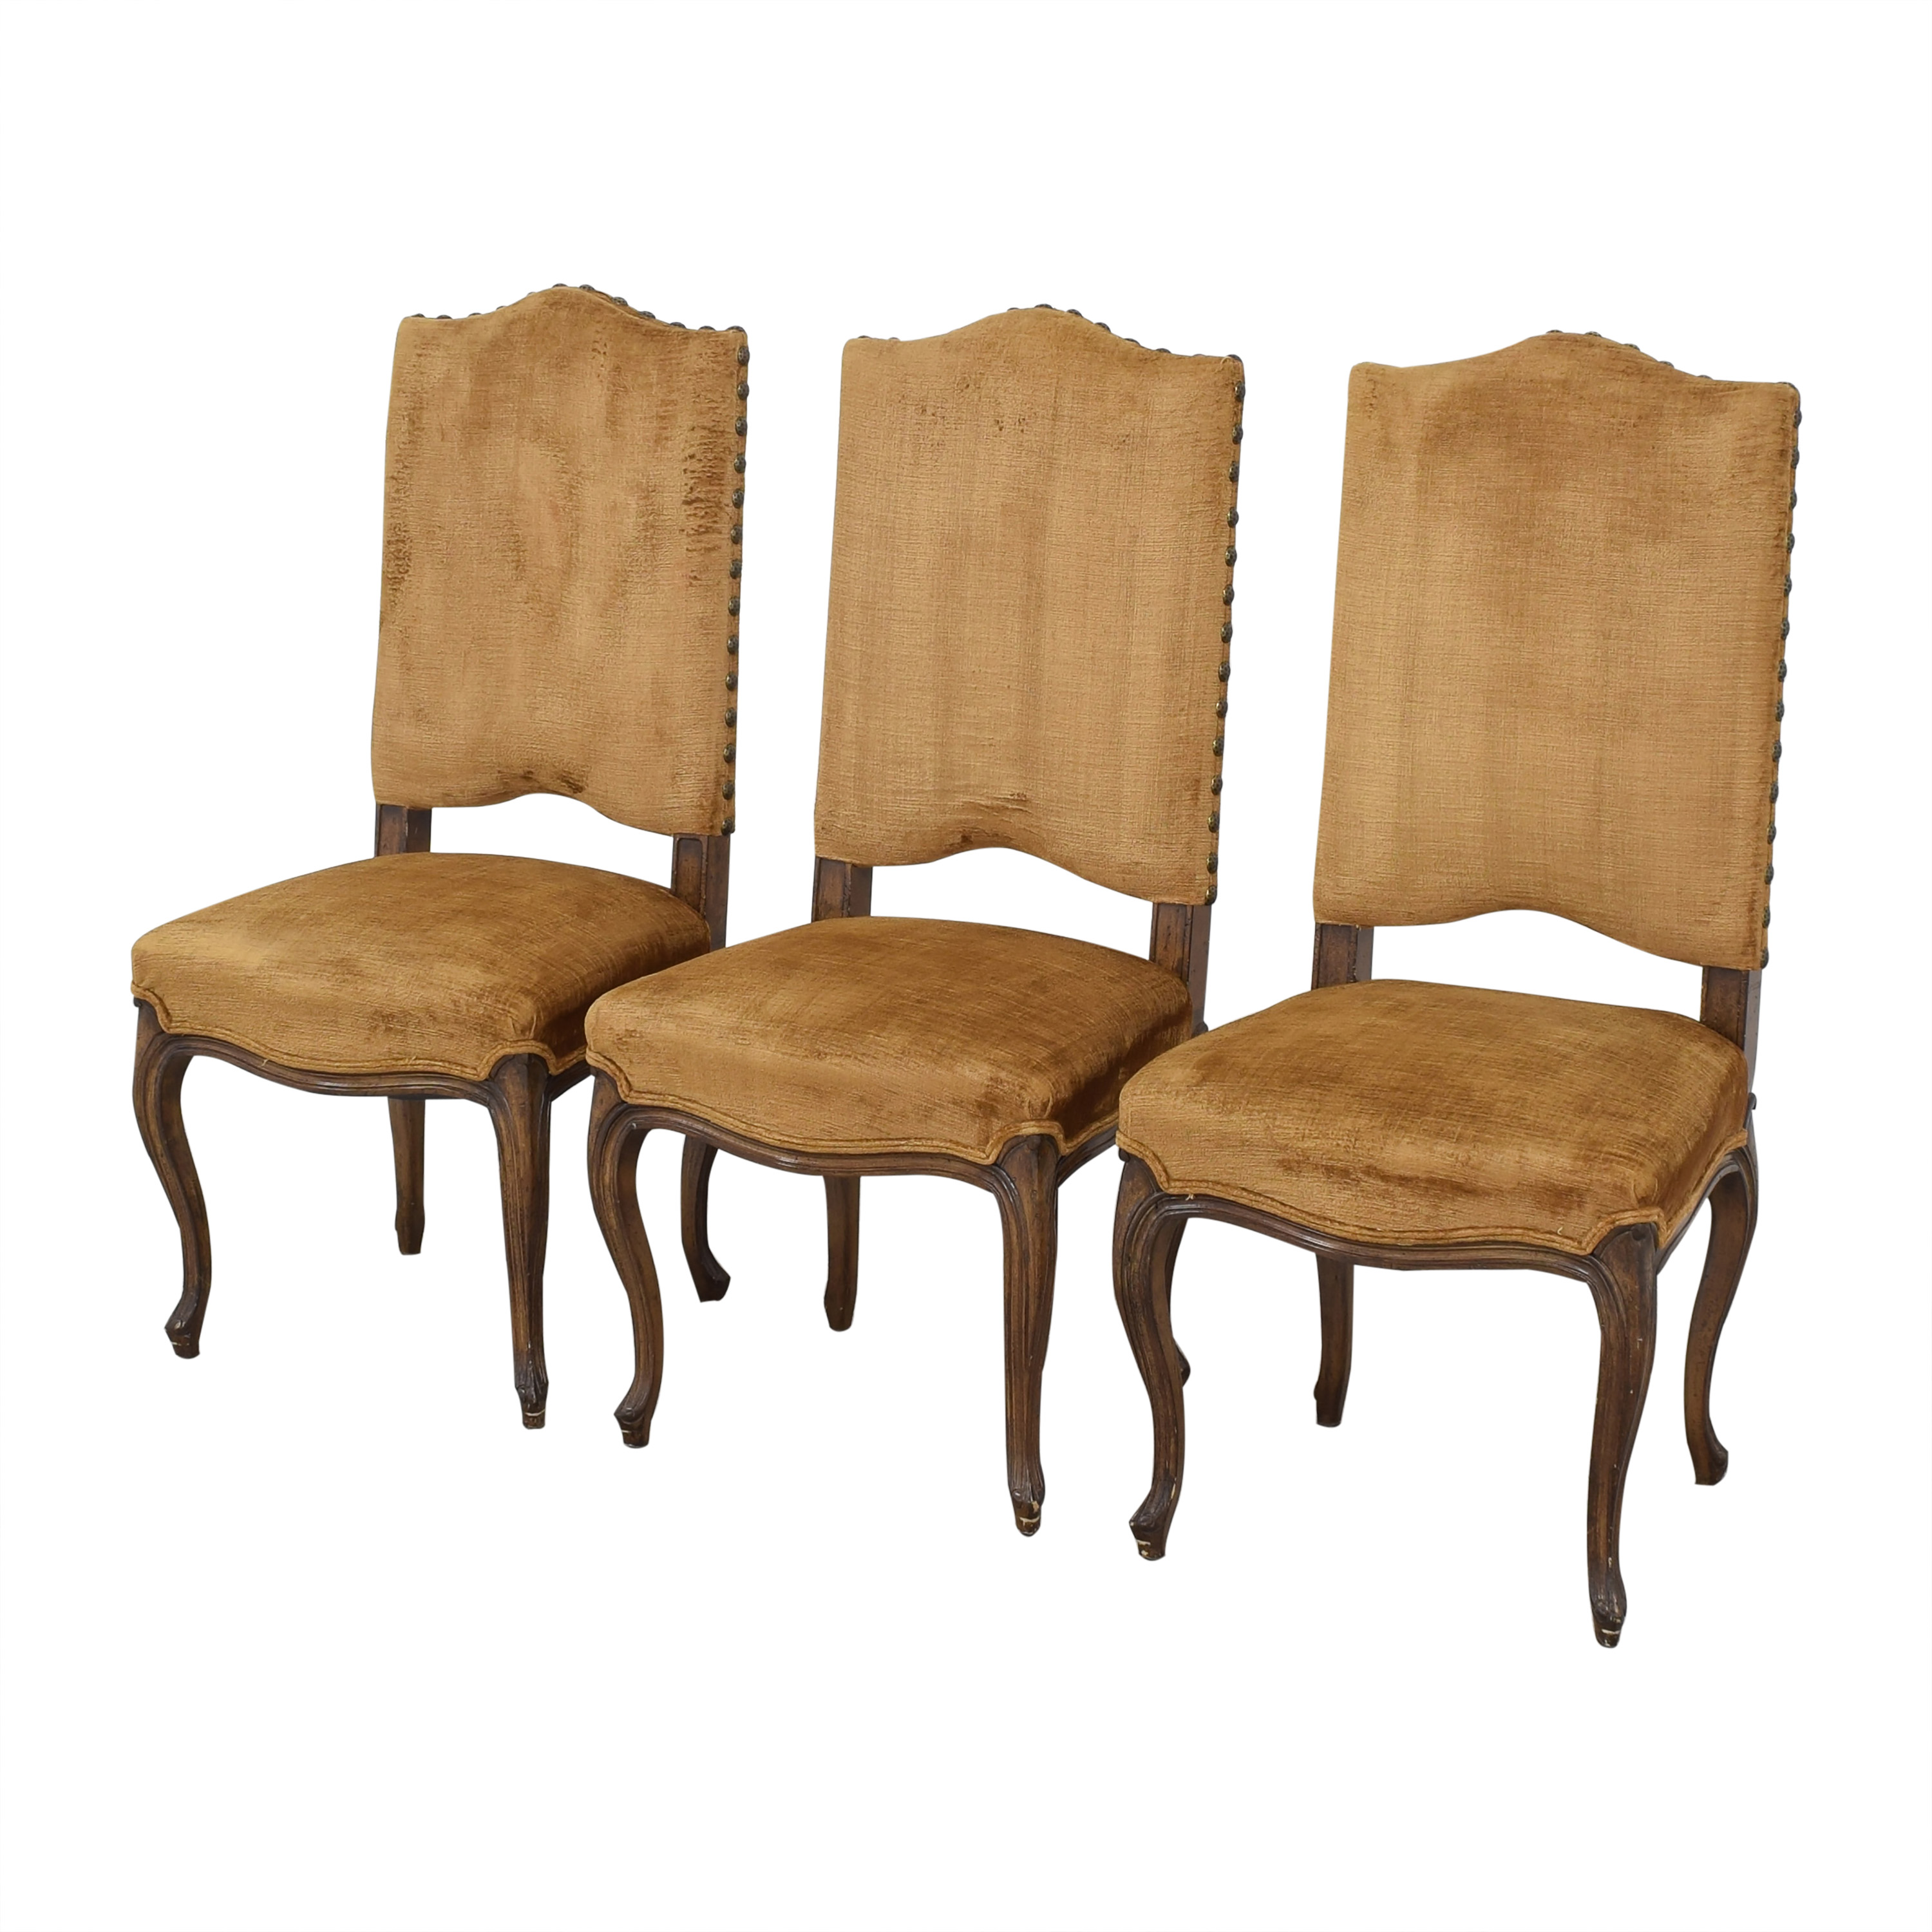 Upholstered Nail Head Dining Chairs ma